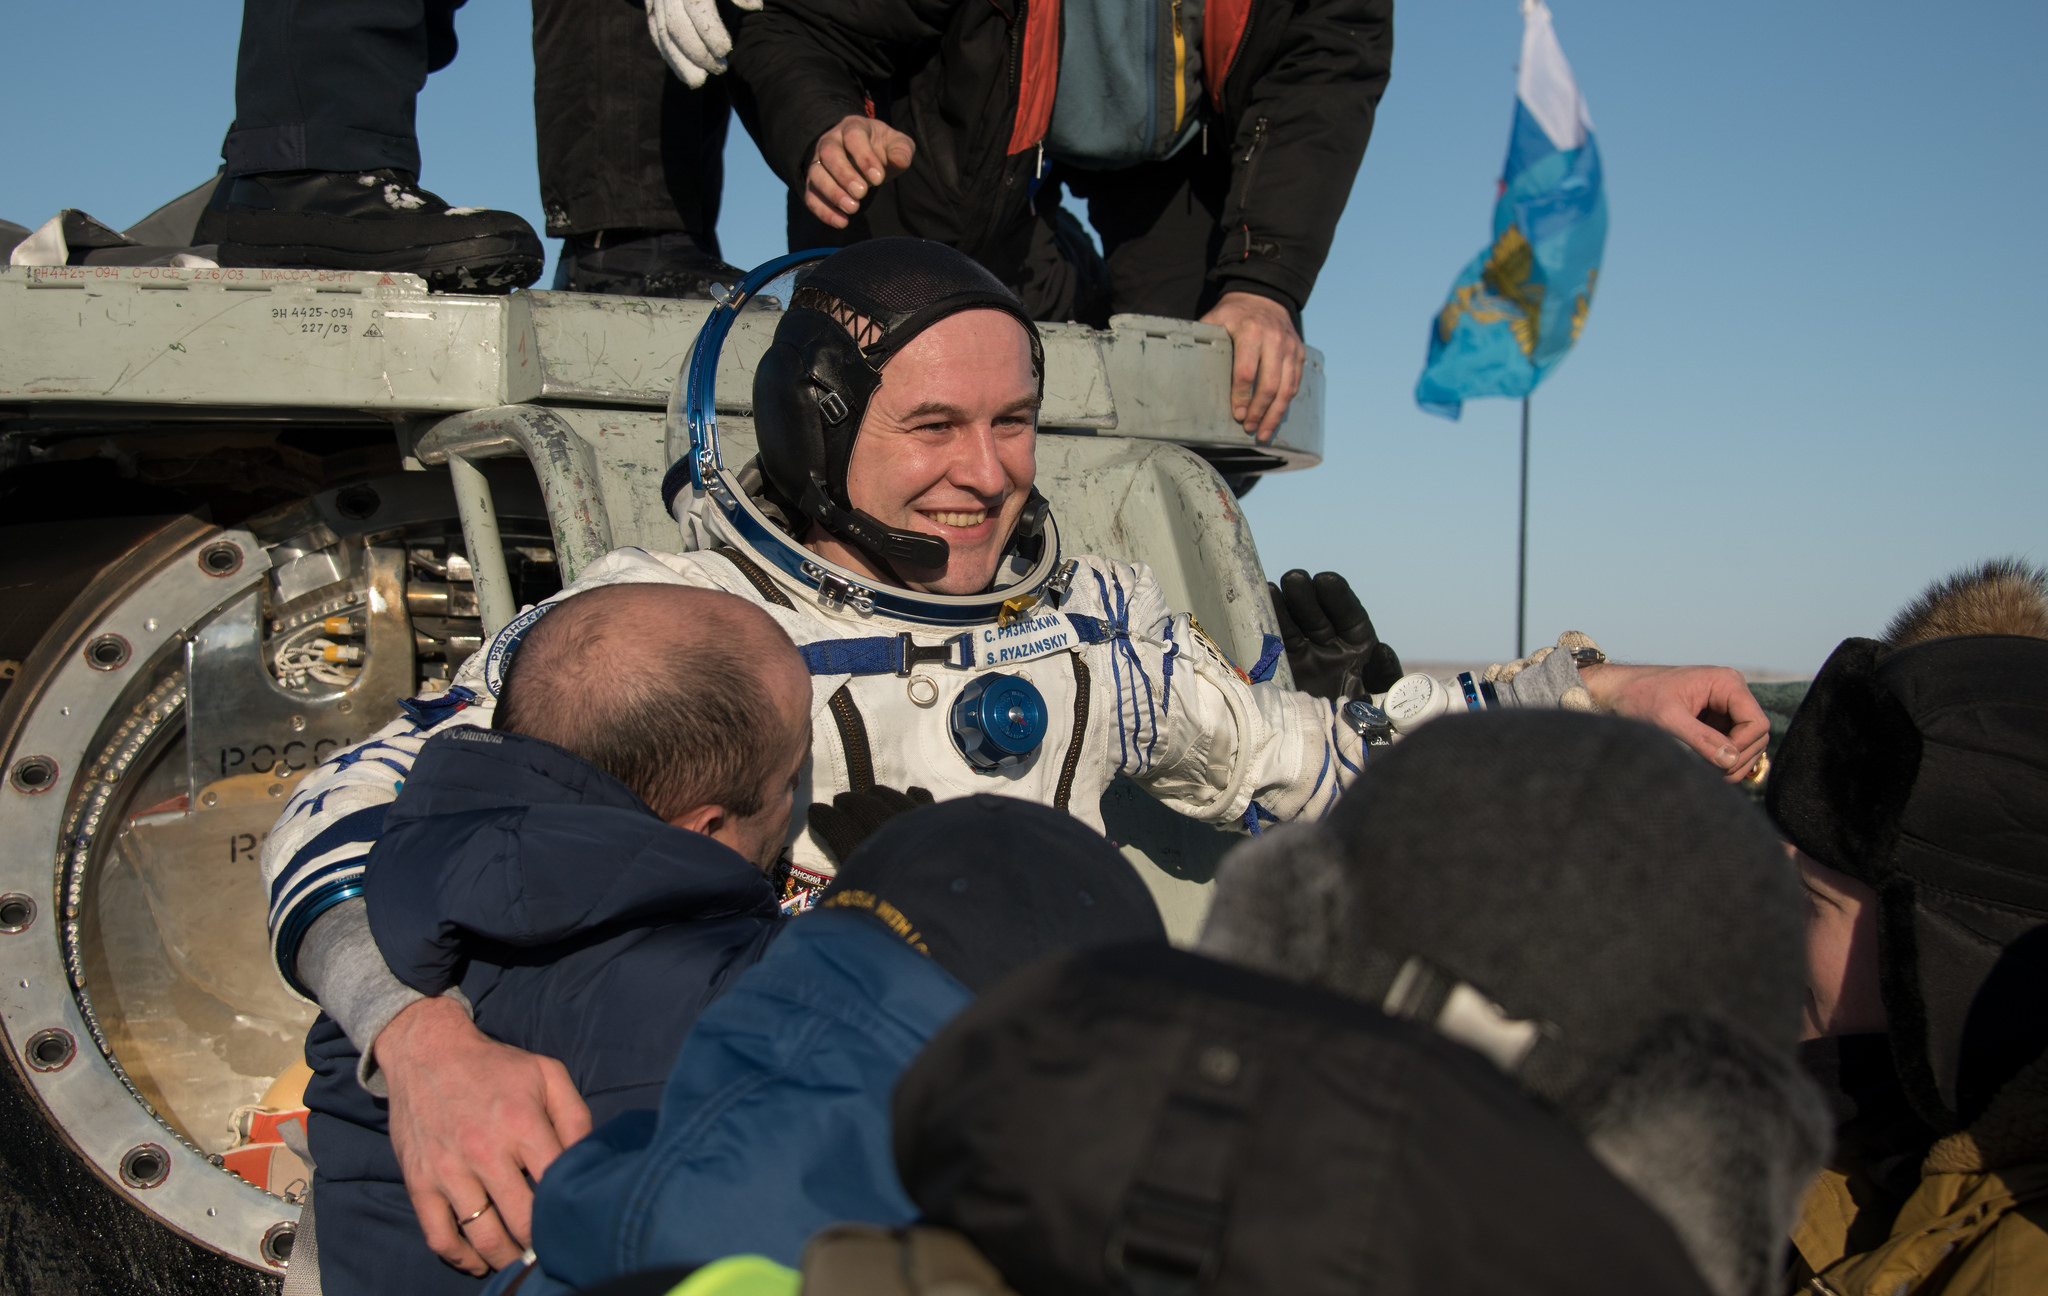 Sergey Ryazansky is helped out of the Soyuz MS-05 spacecraft. Credit: NASA/Bill Ingalls